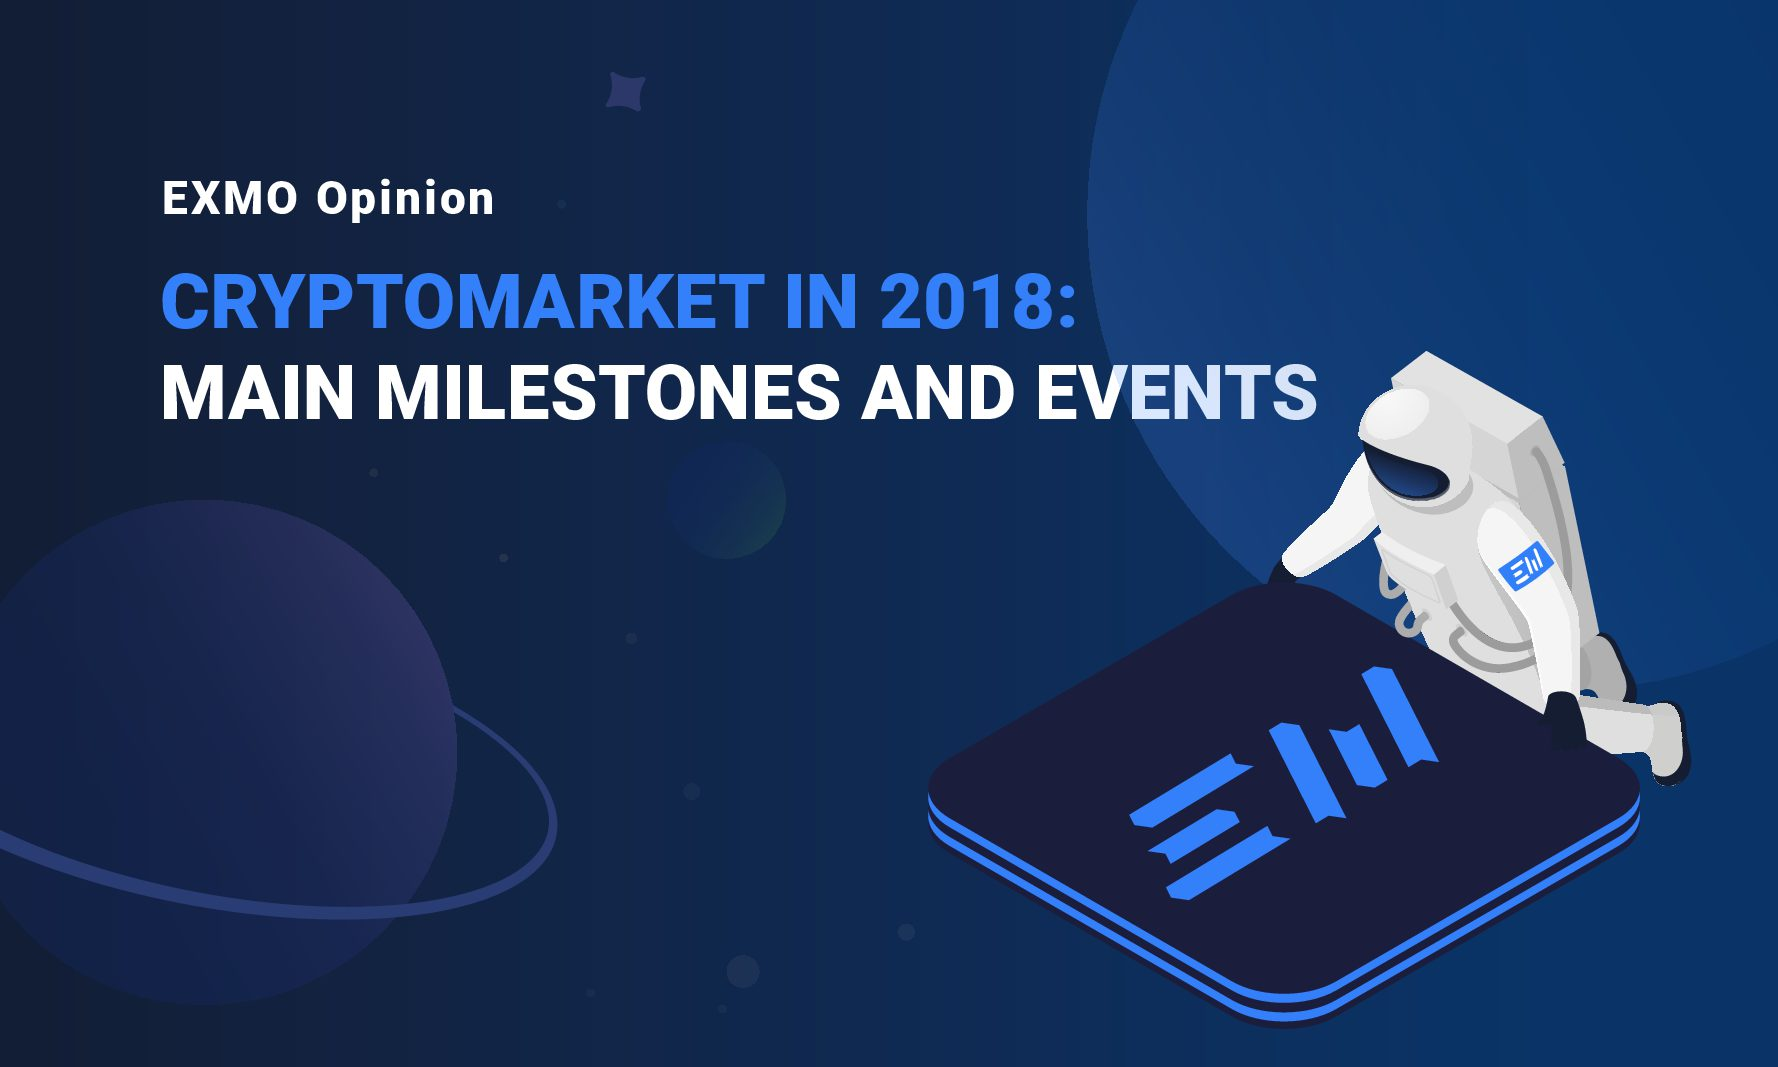 Cryptomarket in 2018: main milestones and events